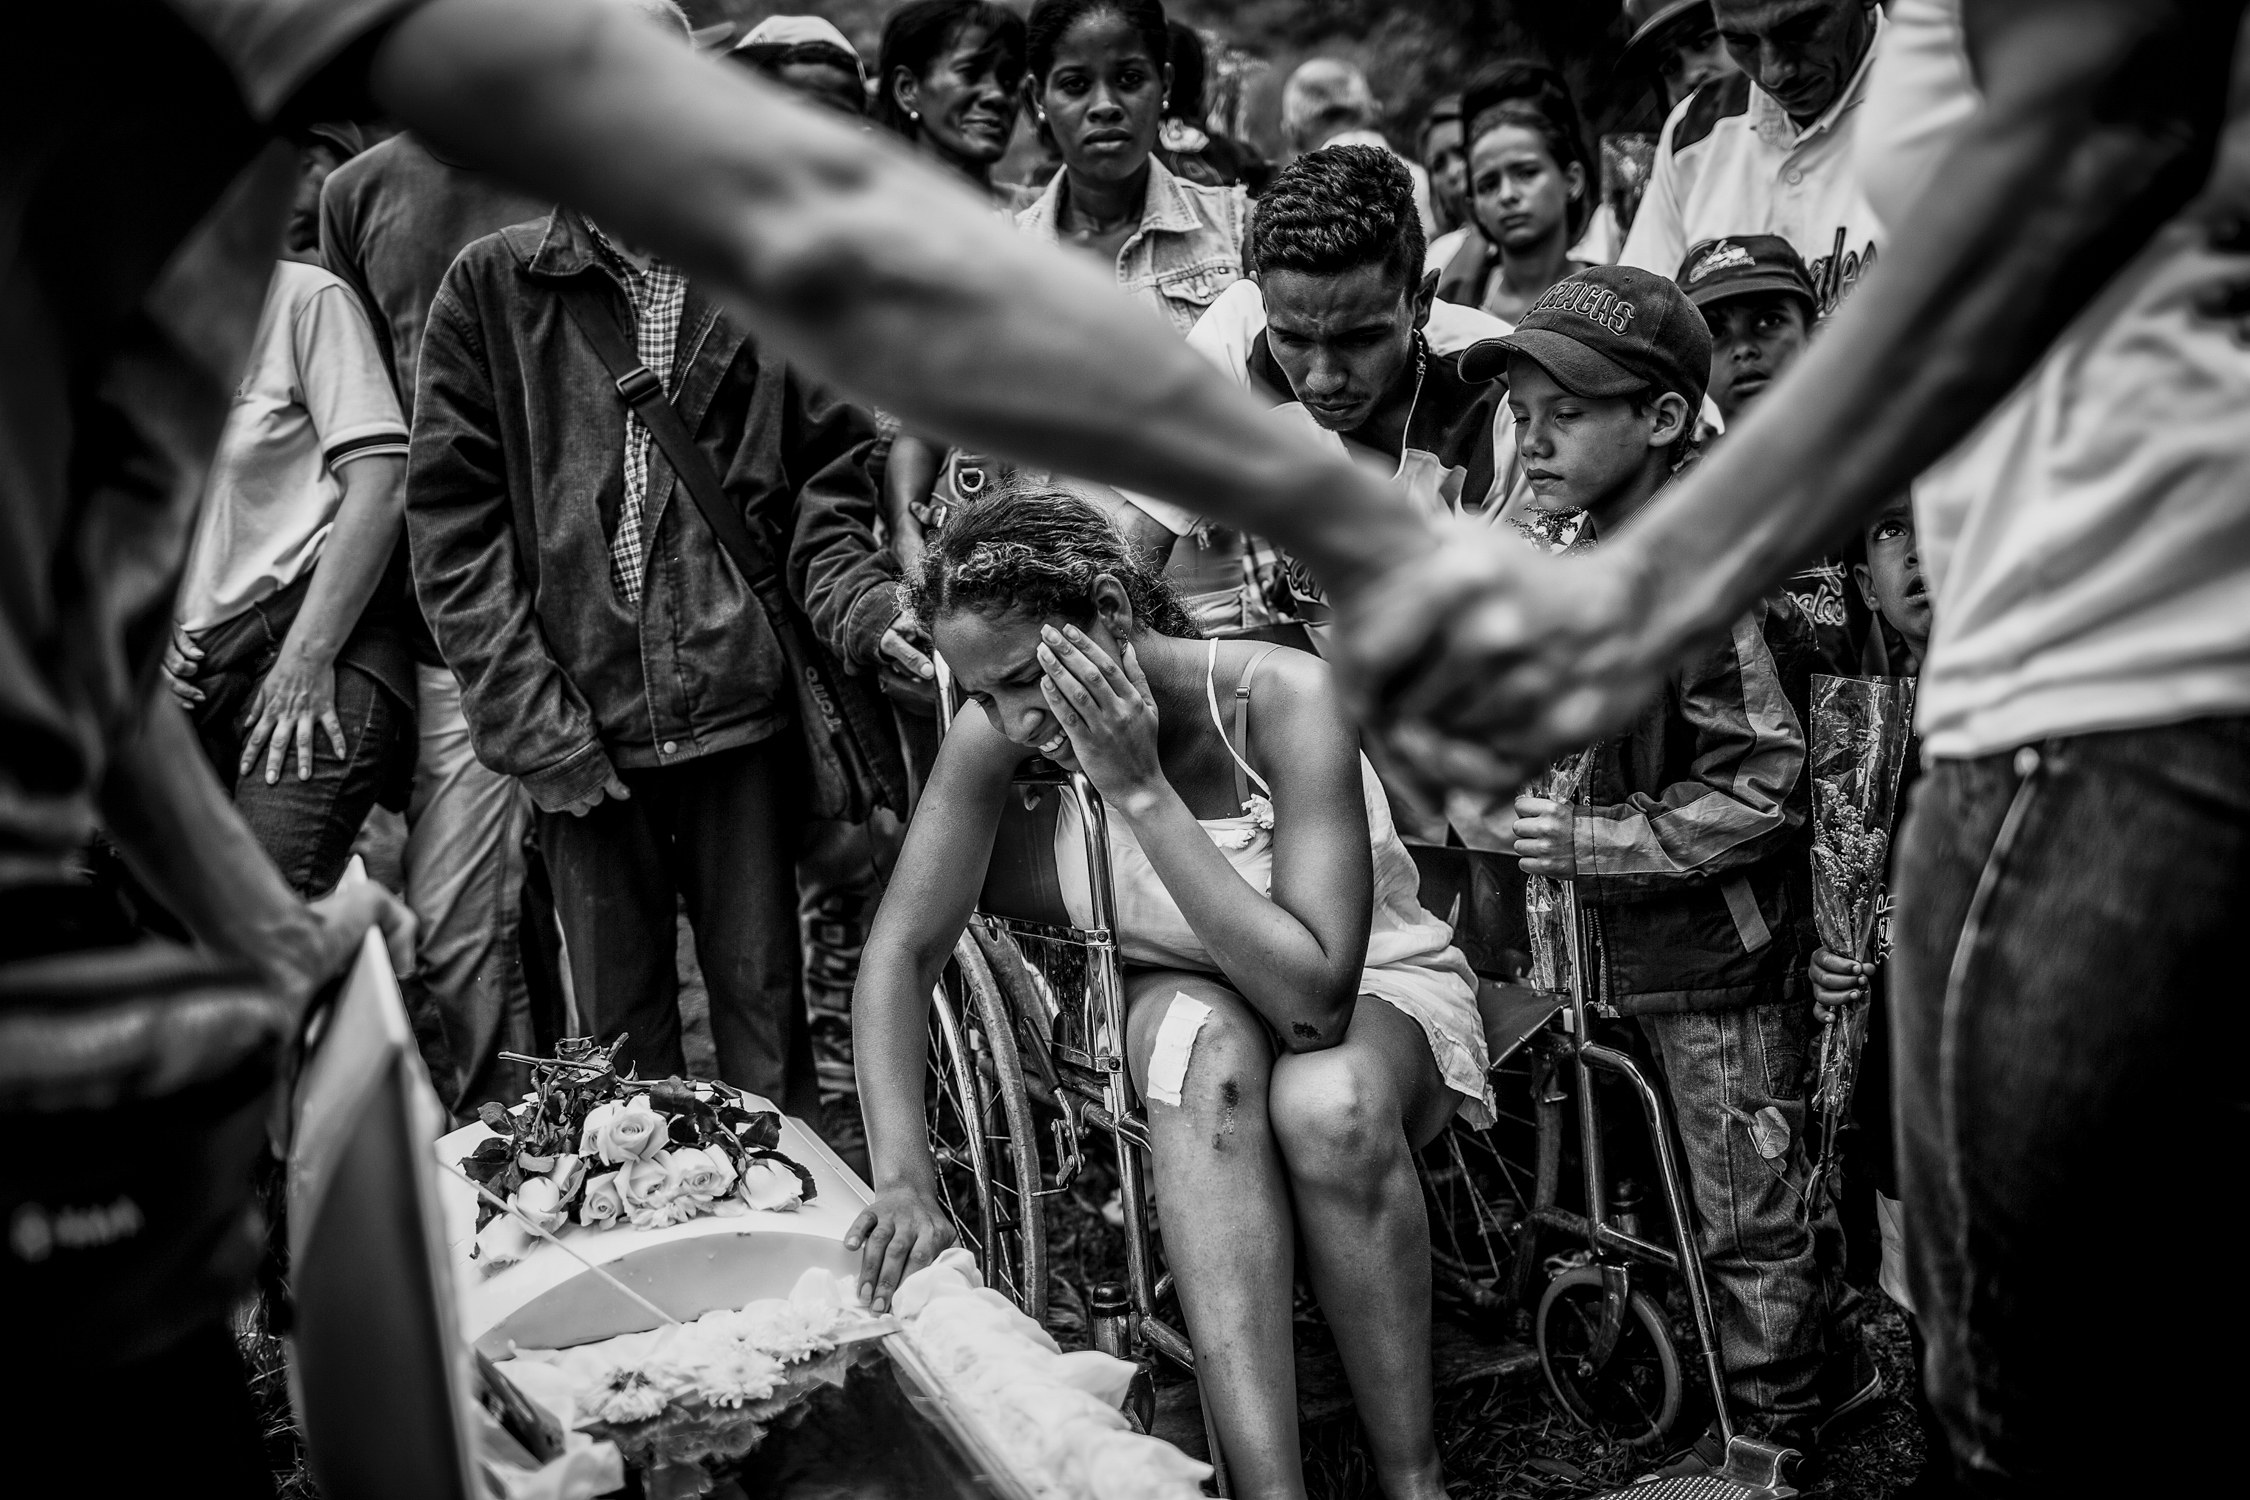 Maria Vizcaya cries over the coffin of her five-year-old son, Gabriel Vizcaya, who died from the shock wave caused by a grenade thrown during a confrontation between police officers and gang members, in 2016 .  Photographs by Alejandro Cegarra .